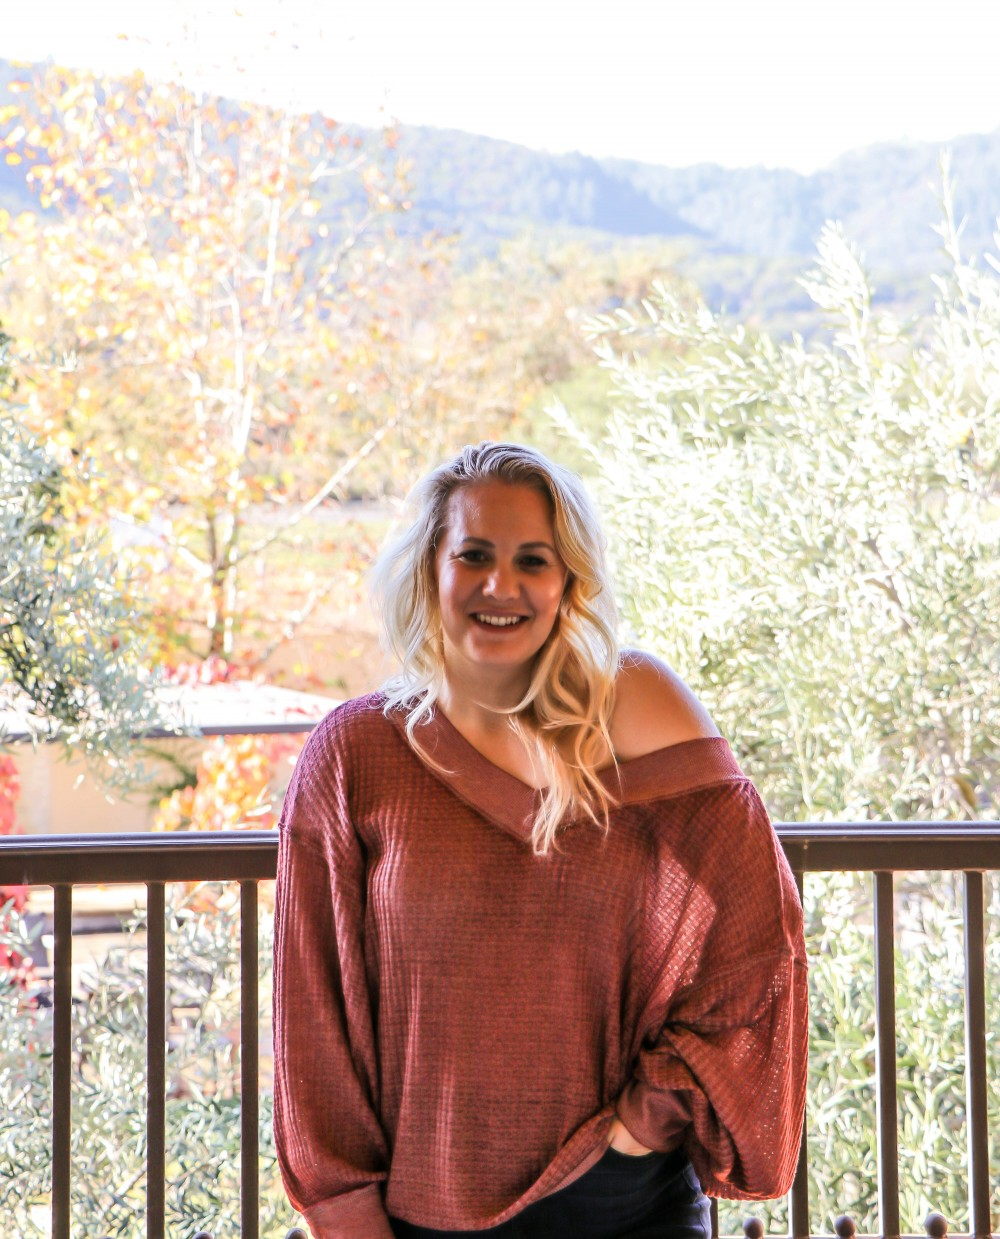 Oversized One Shoulder Free People Sweater You Need in Your Closet! Click on the photo to read the post! | Have Need Want #freepeople #freepeoplesweater #thermaltop #oversizedthermaltop #casualstyle #casualoutfitinspo